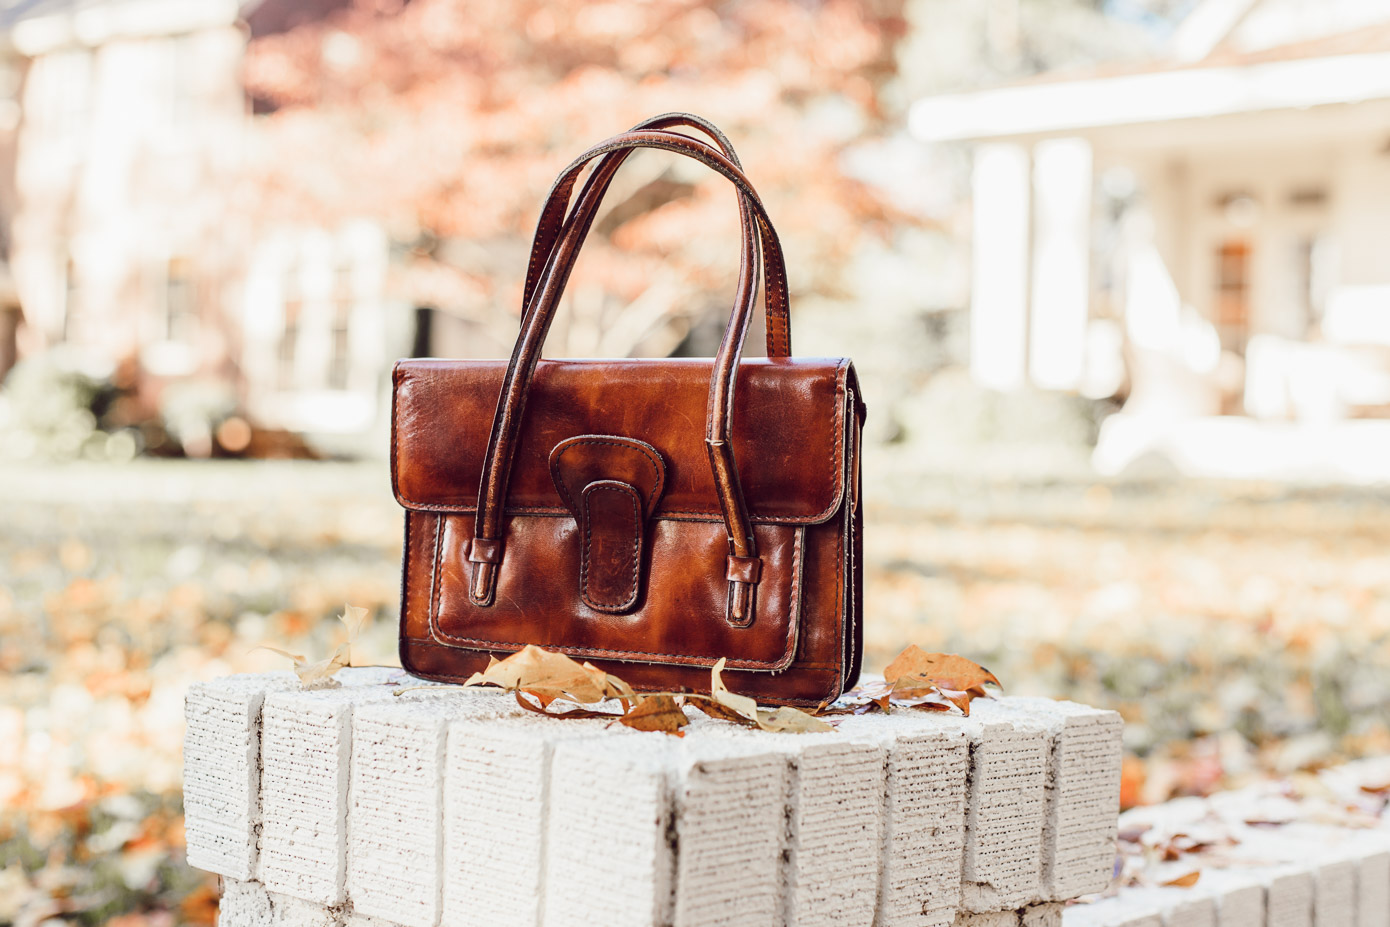 Vintage Handbag | Cognac Leather Handbag featured on Louella Reese